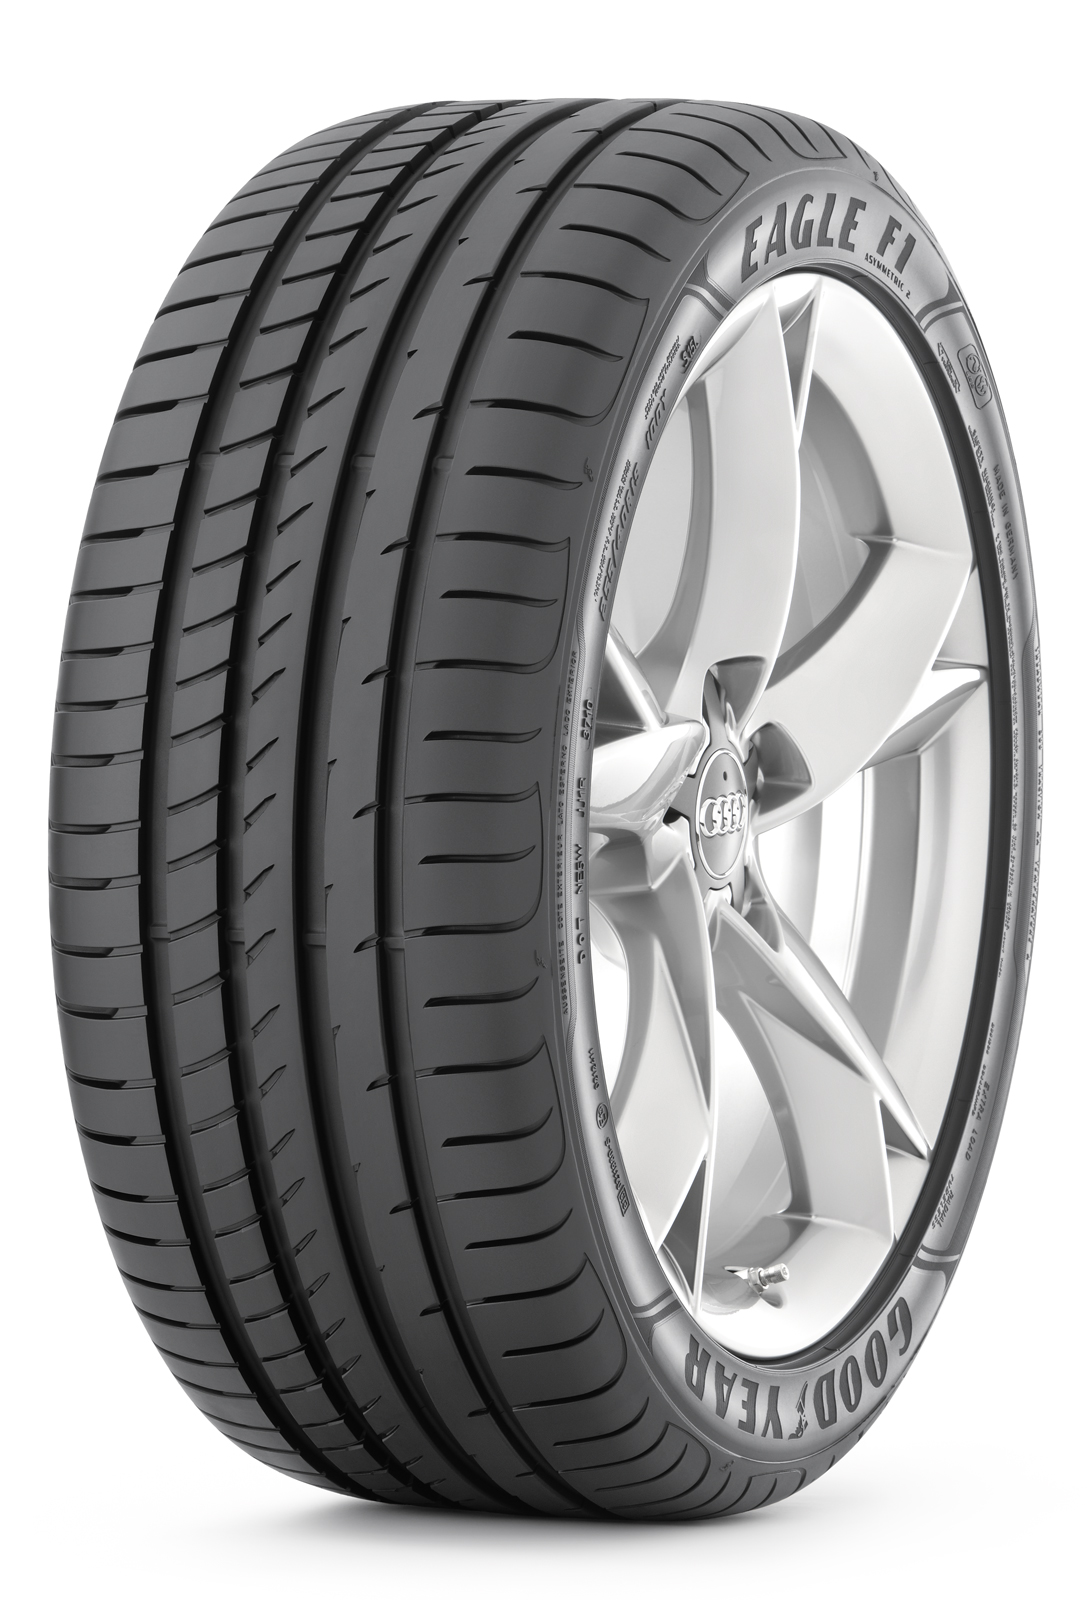 Anvelopa vara GOODYEAR Eagle F1 Asymmetric 2 215/45 R17 Y 87